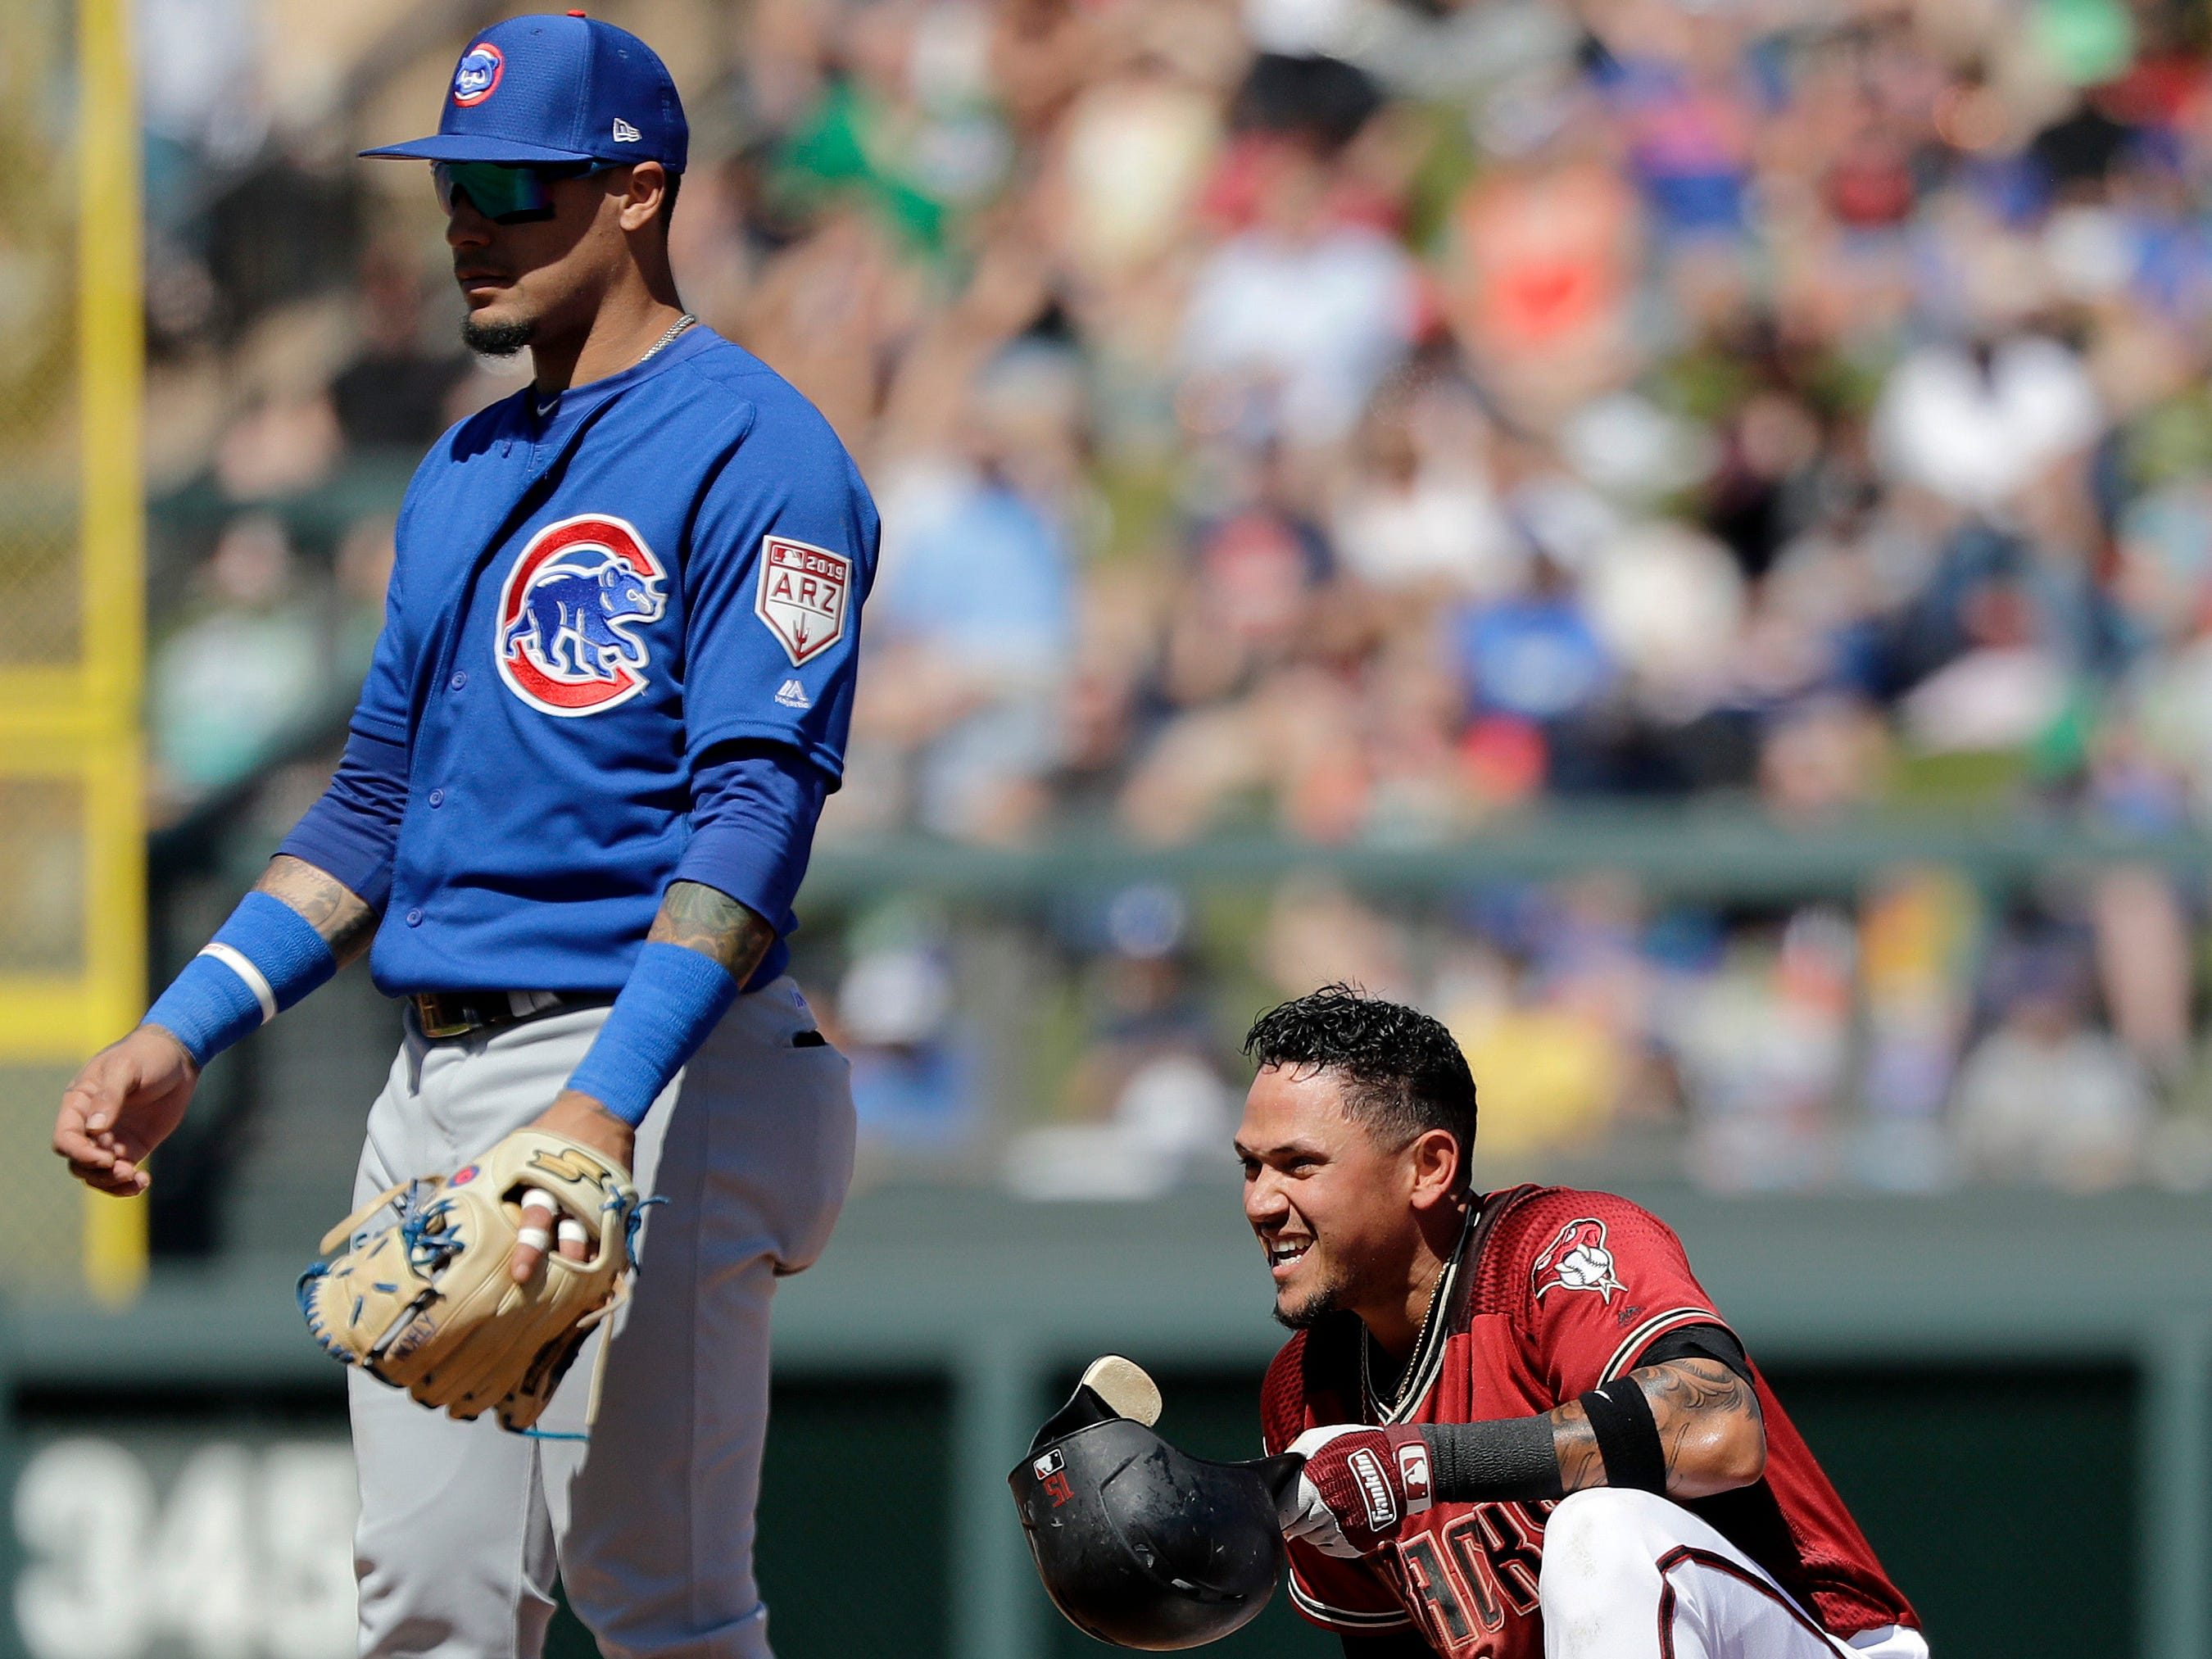 Arizona Diamondbacks' Ildemaro Vargas, right, smiles after arriving safely at second base on his double as Chicago Cubs shortstop Javier Baez stands nearby in the third inning of a spring training baseball game Saturday, March 16, 2019, in Scottsdale, Ariz.